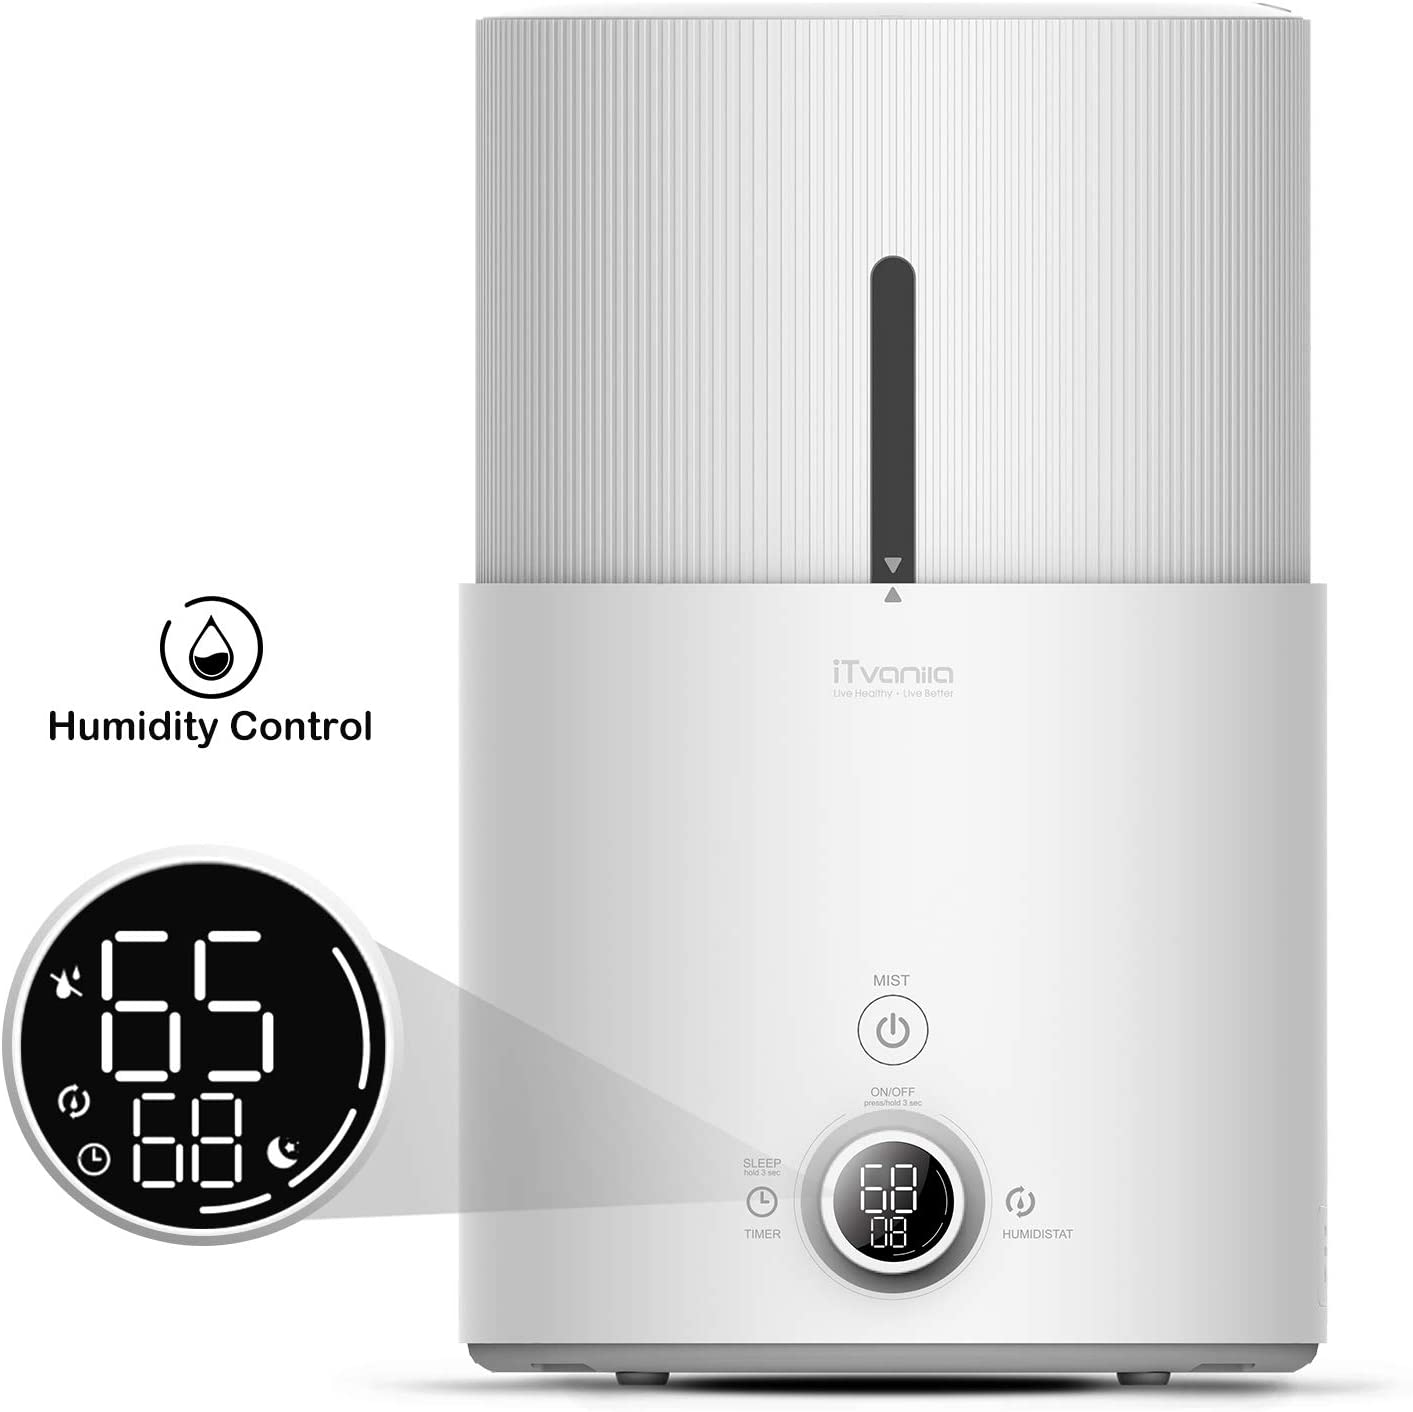 iTvanila Cool Mist Humidifier Essential Oil Diffuser, 4.5L Humidifiers for Large Bedroom Baby, Automatic Humidity Keeping with LED Display, Whisper-Quiet Operation, Lasts Up to 48 Hours Z1